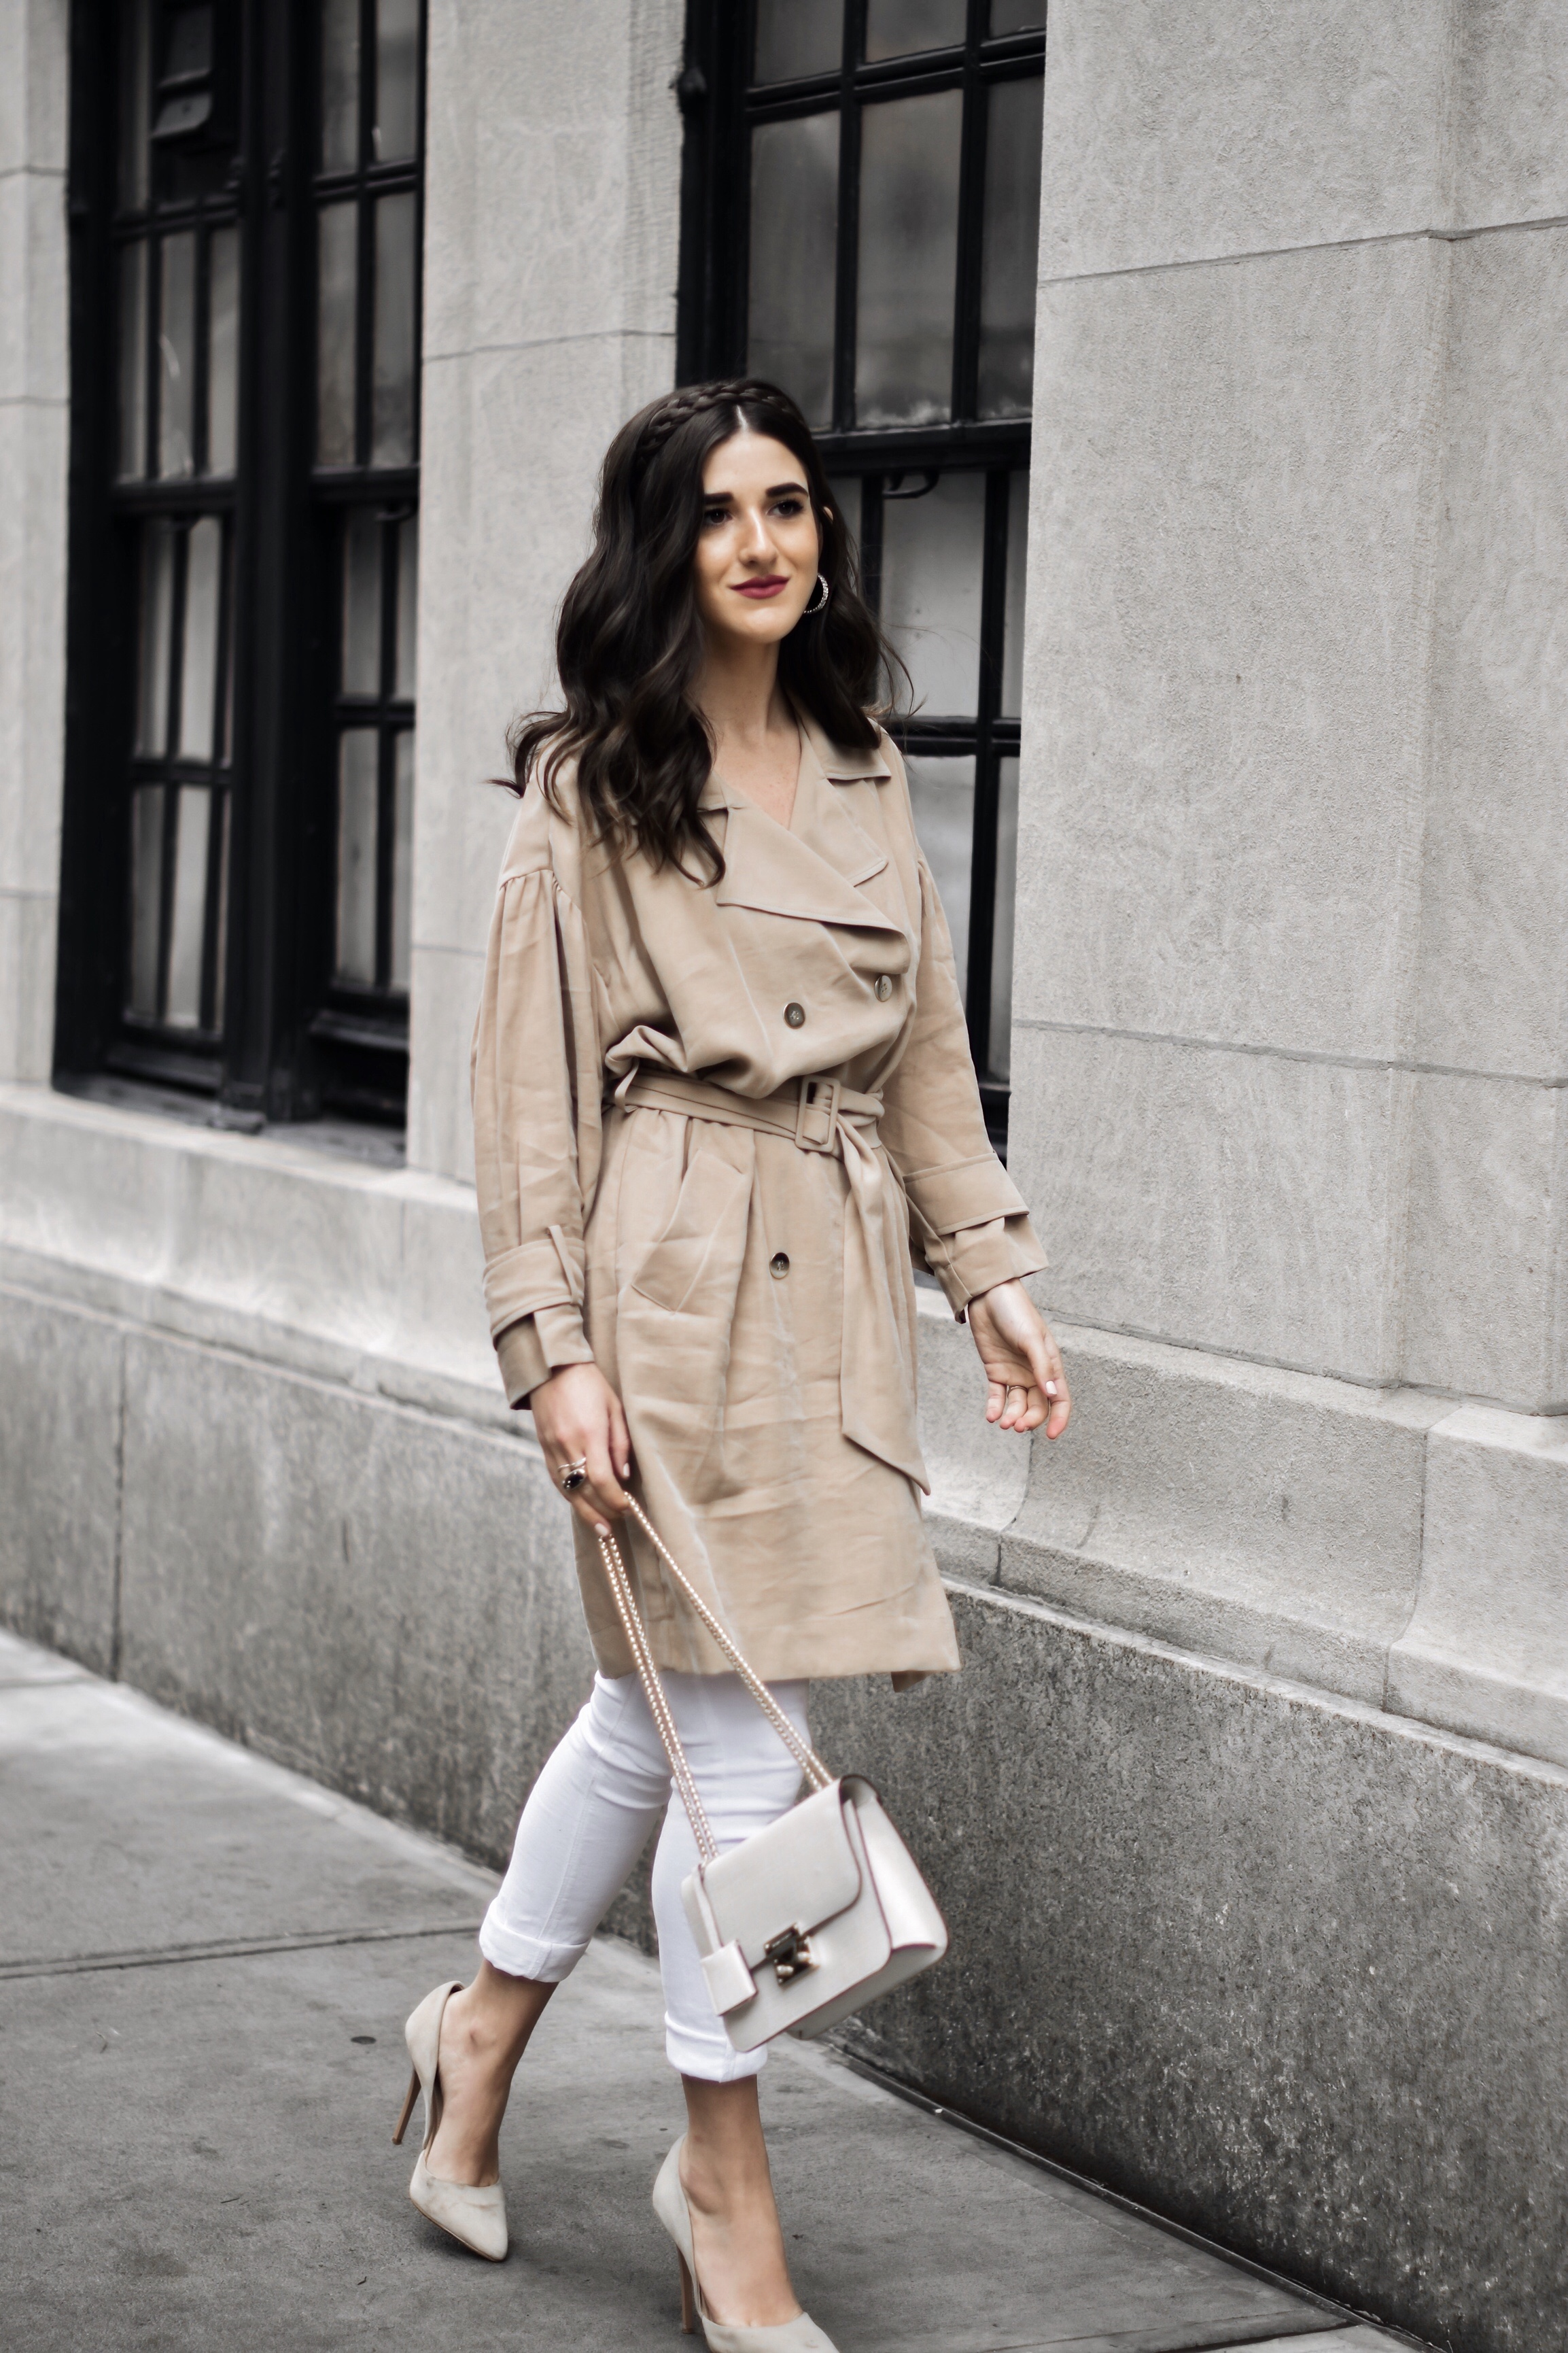 453f7932 All About Me Trench Coat Dress White Jeans Esther Santer Fashion Blog NYC  Street Style Blogger